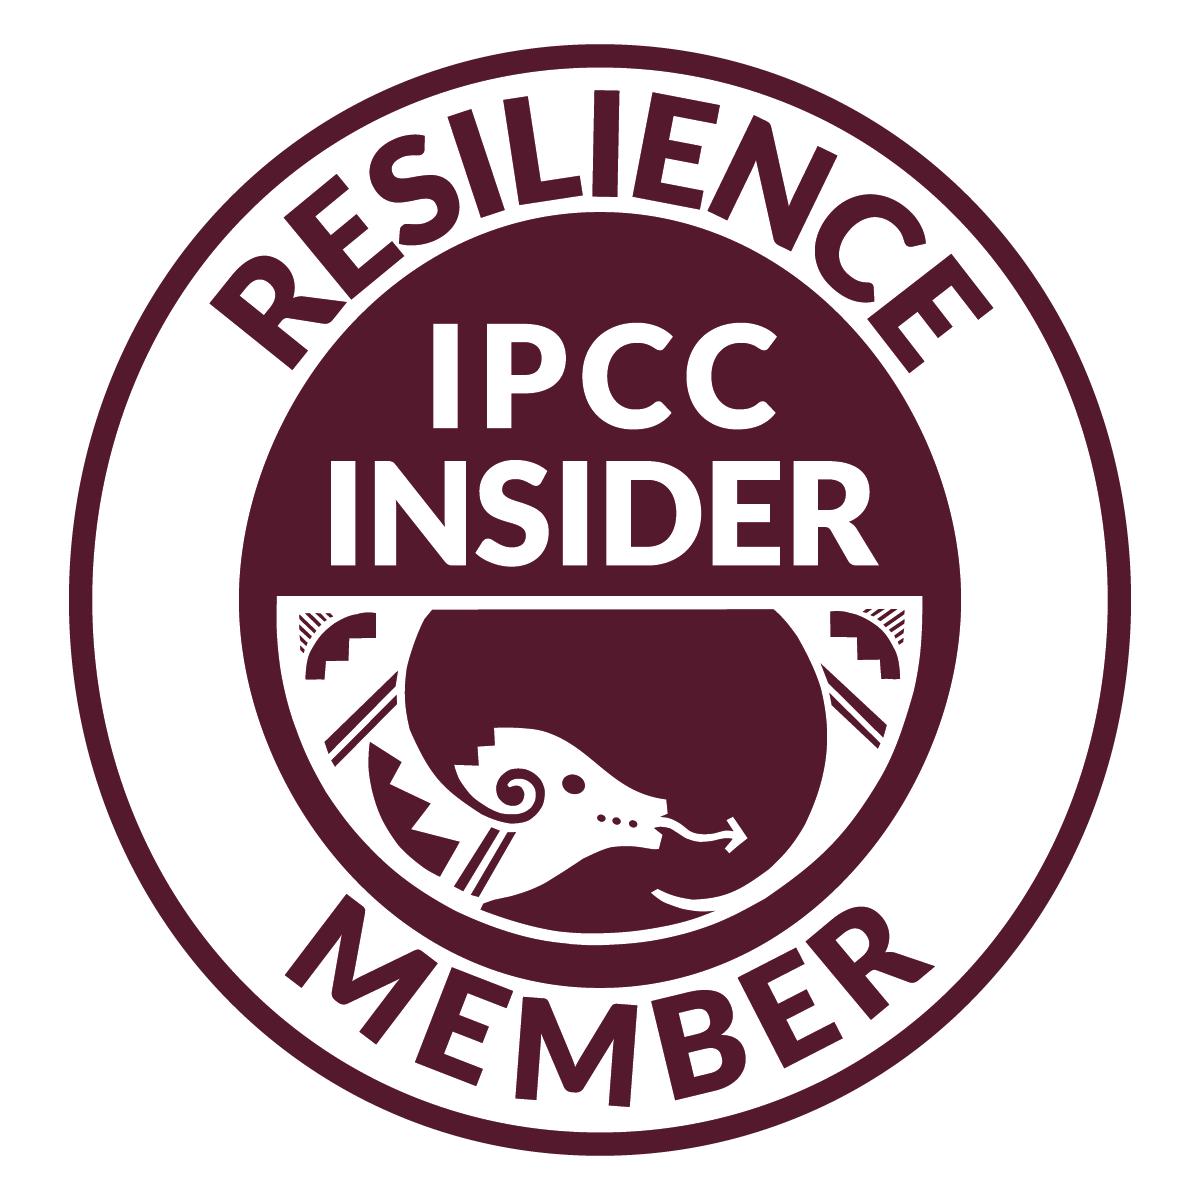 Resilience Indian Pueblo Cultural Center Membership Level